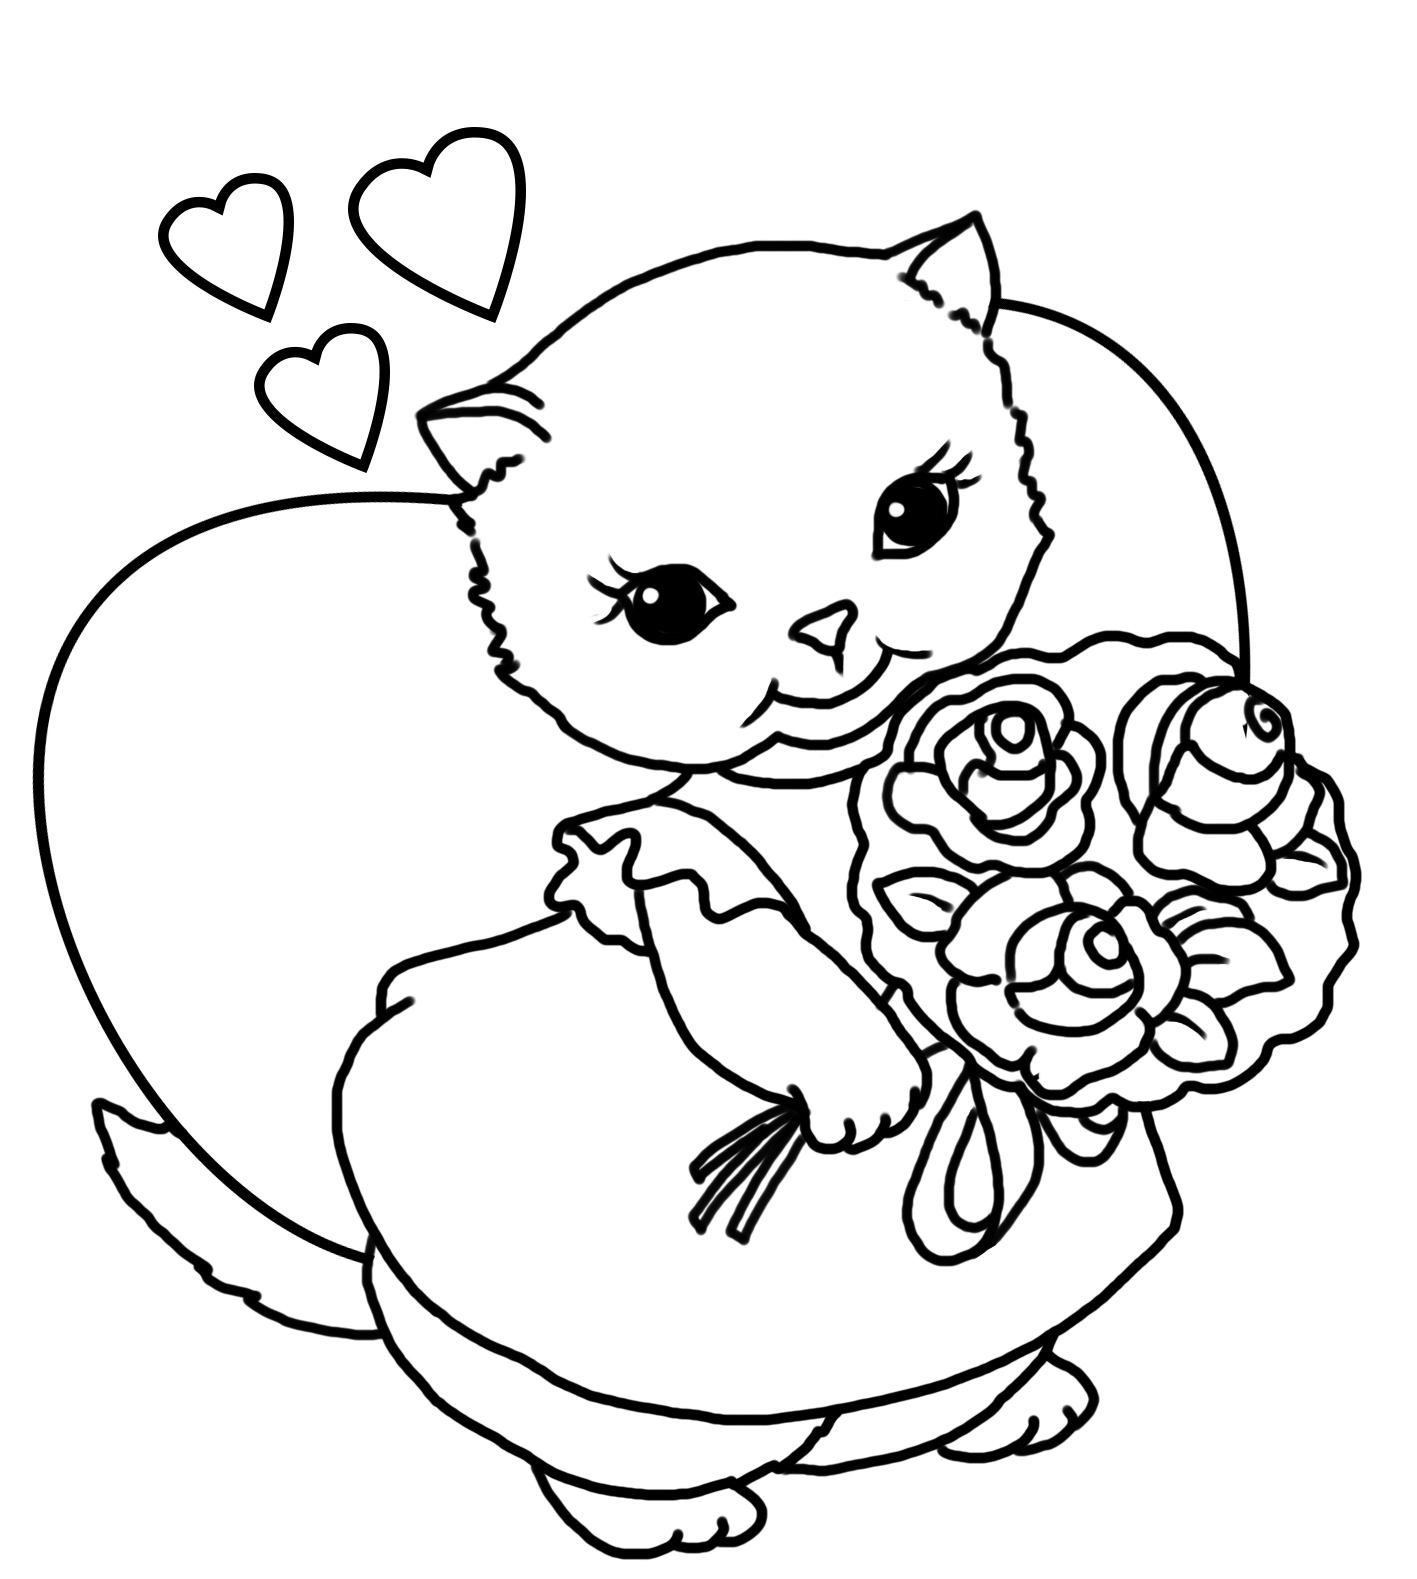 Girl and Kitty Valentine » Coloring Pages » Surfnetkids | 1579x1417